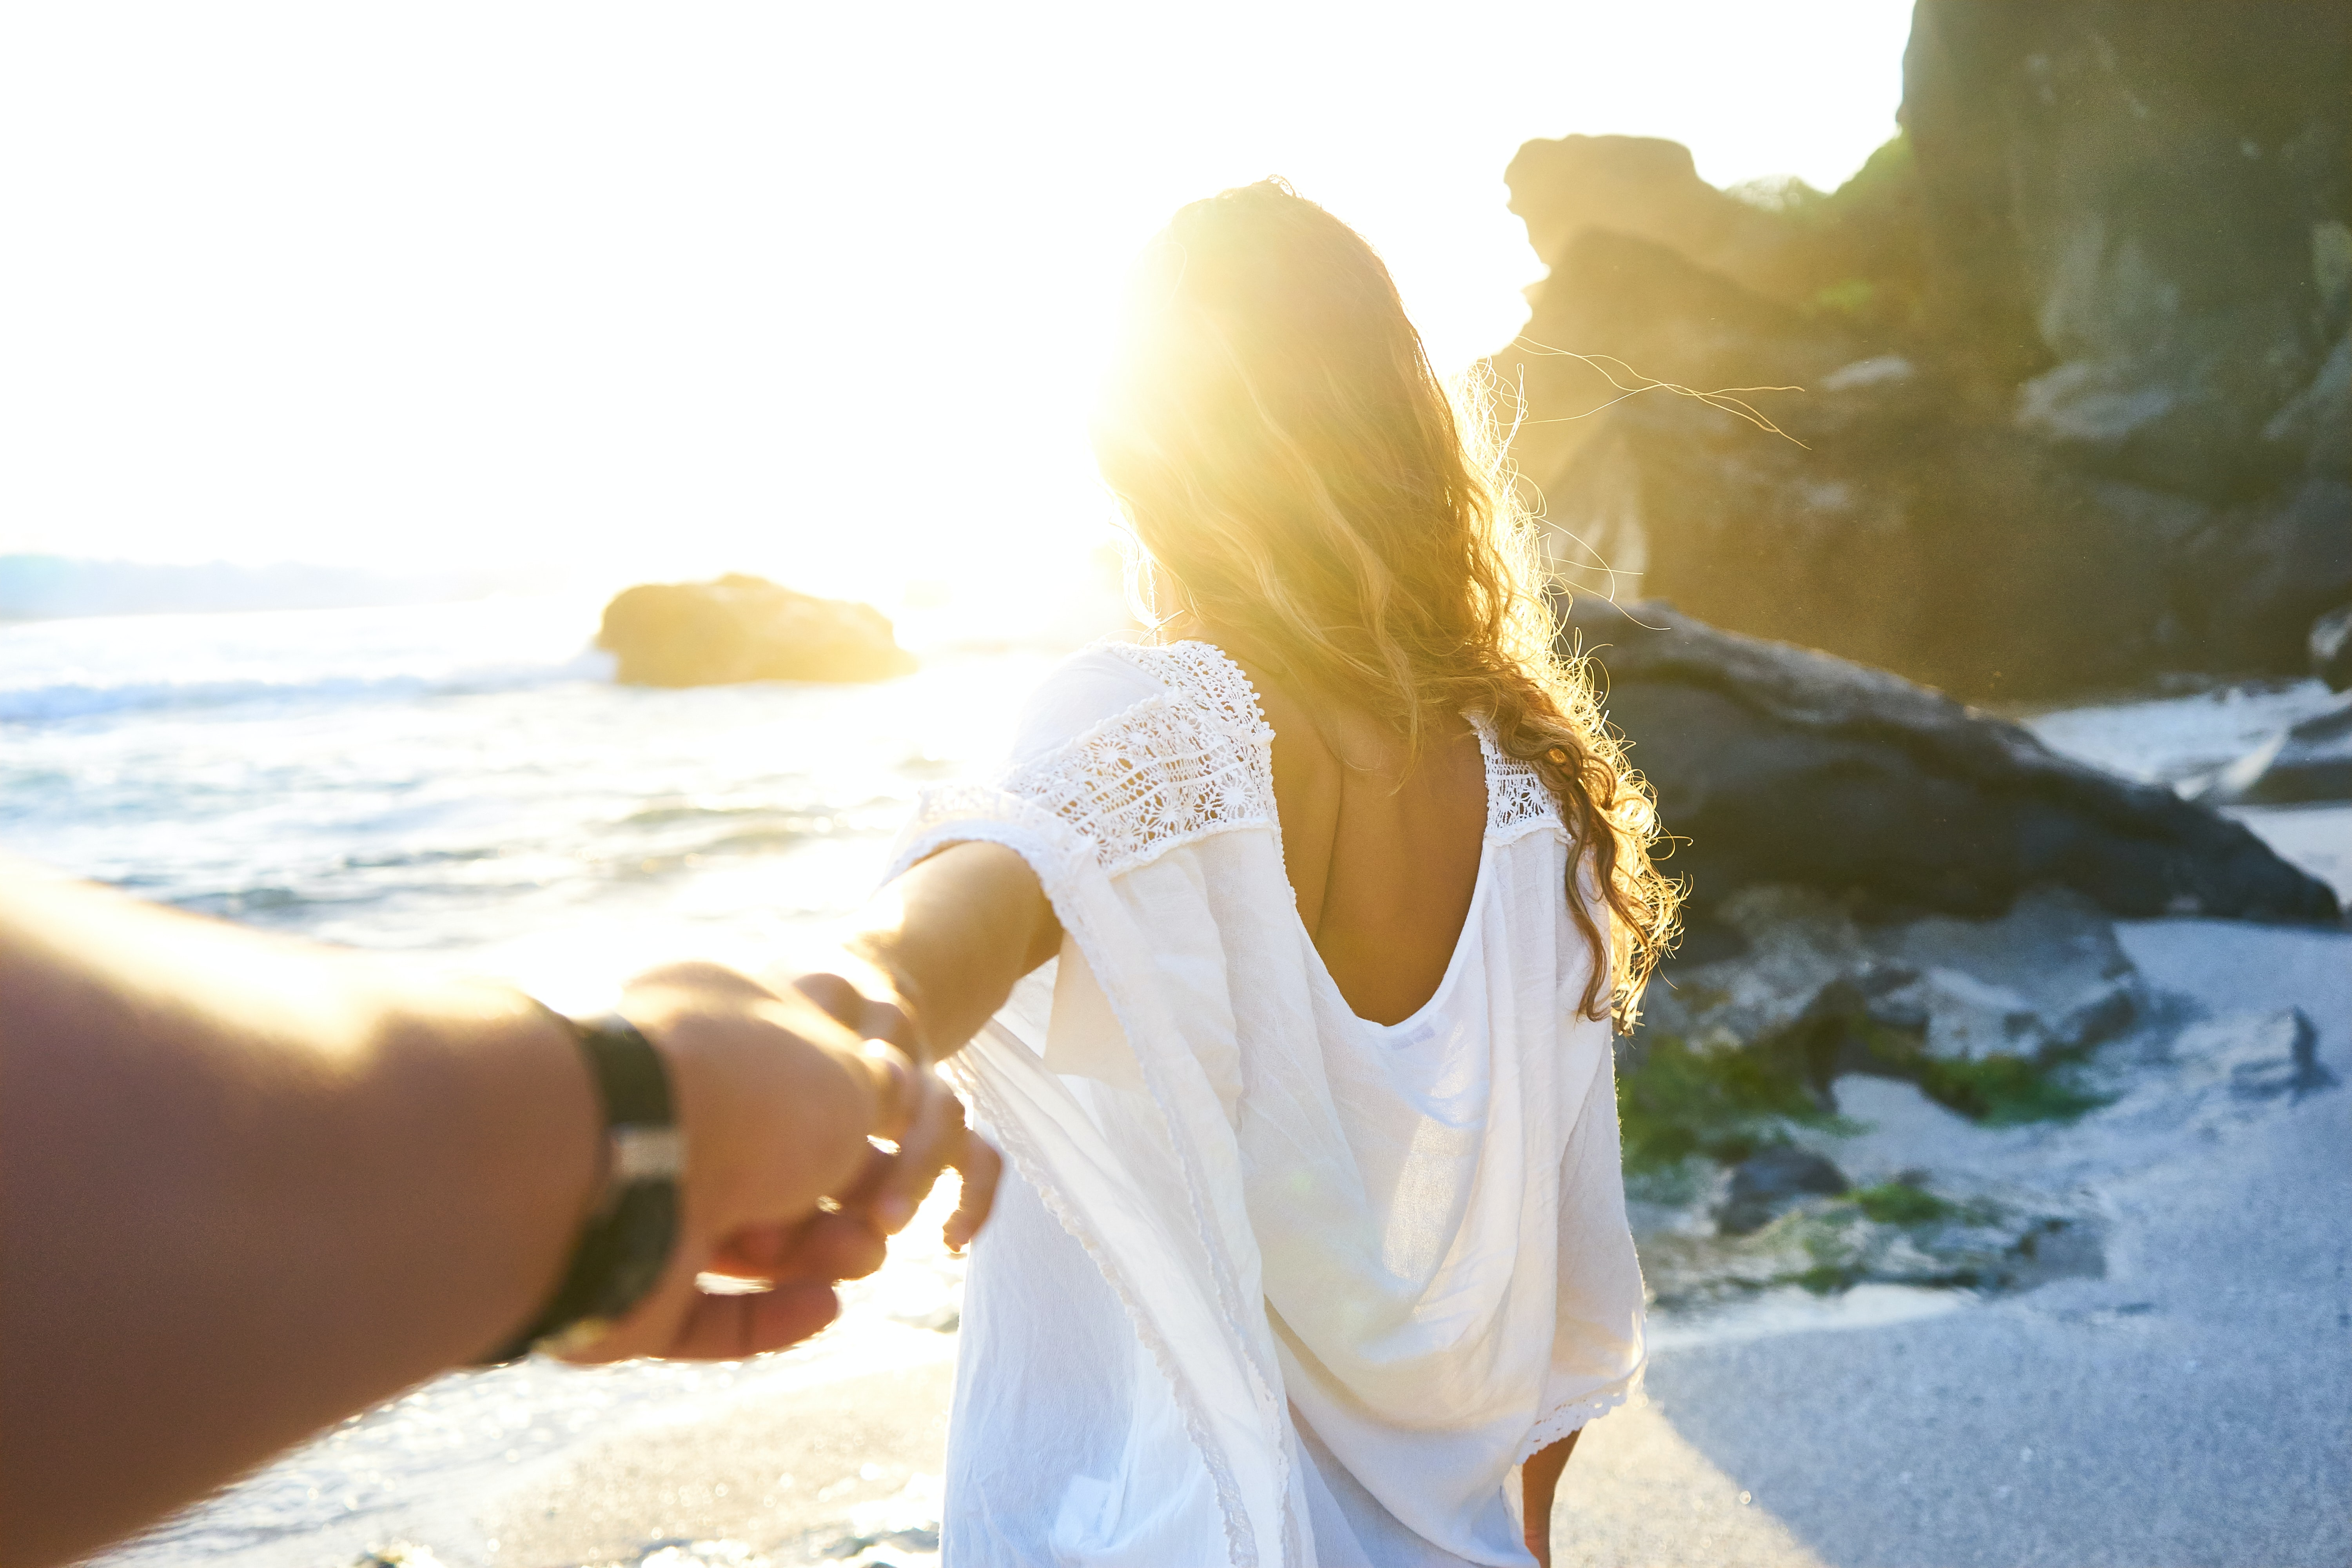 person holding woman's hand beside sea while facing sunlight